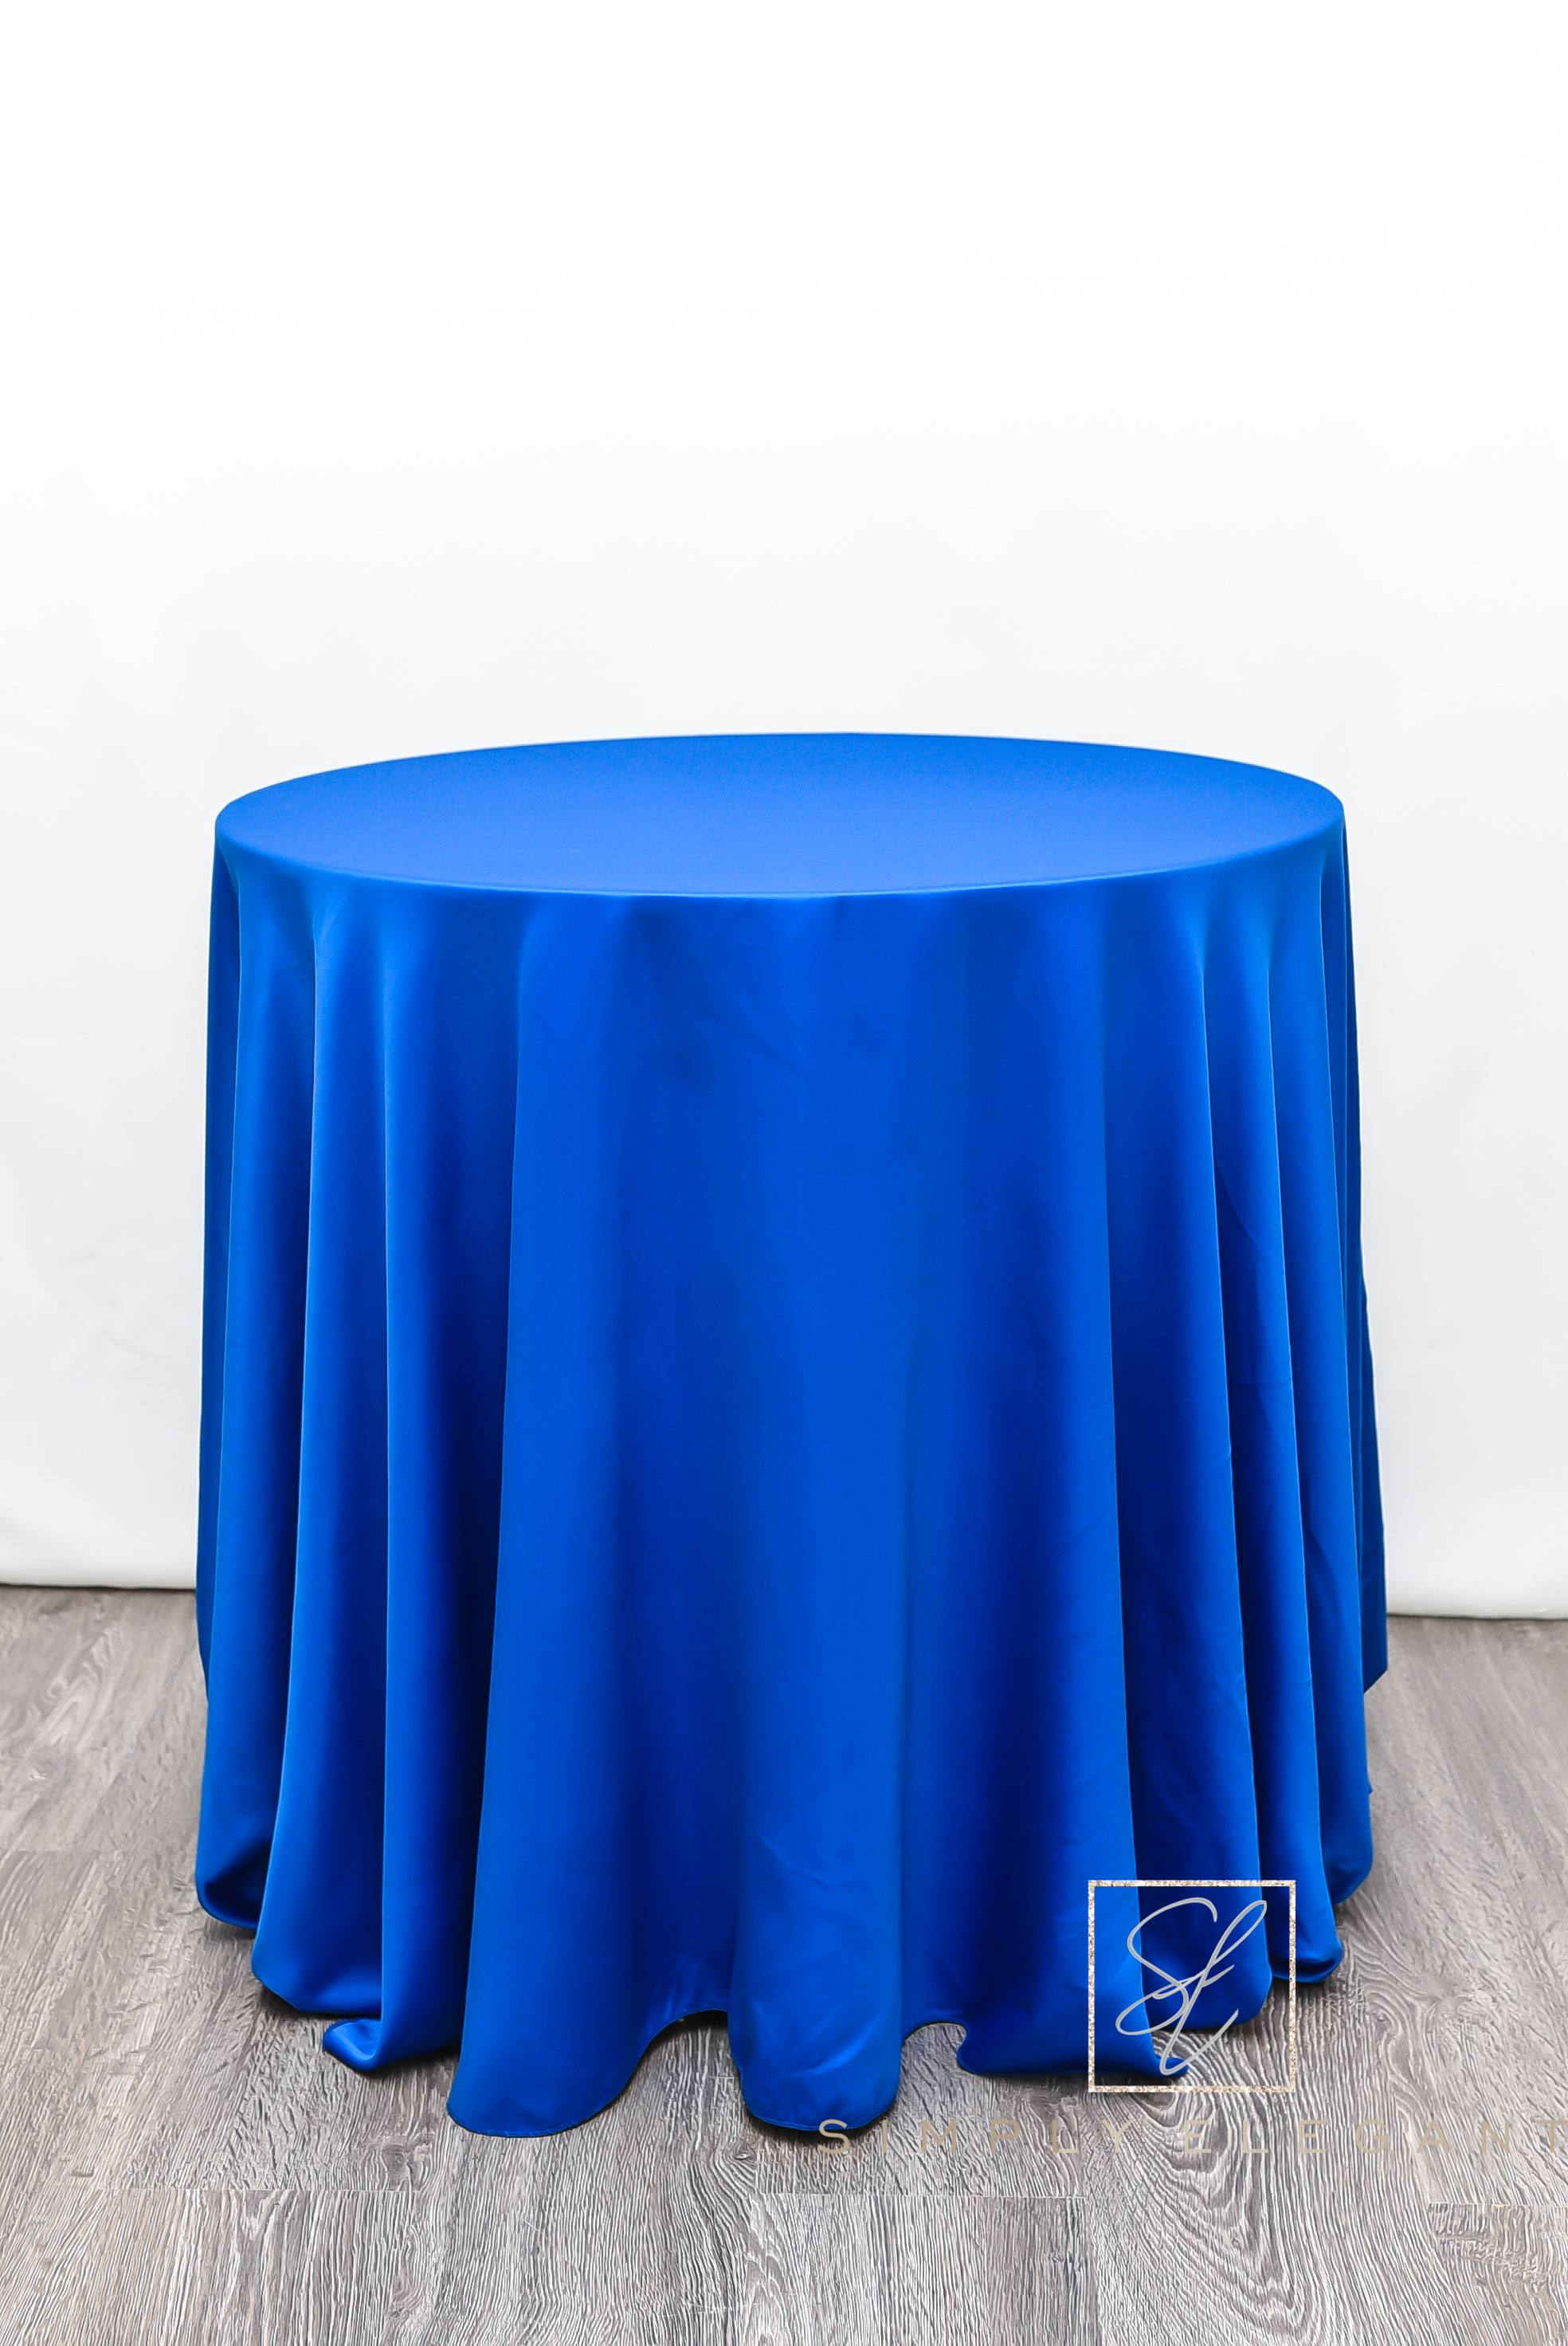 rent tablecloths and chair covers near me tie back for wedding linen tablecloth rental great